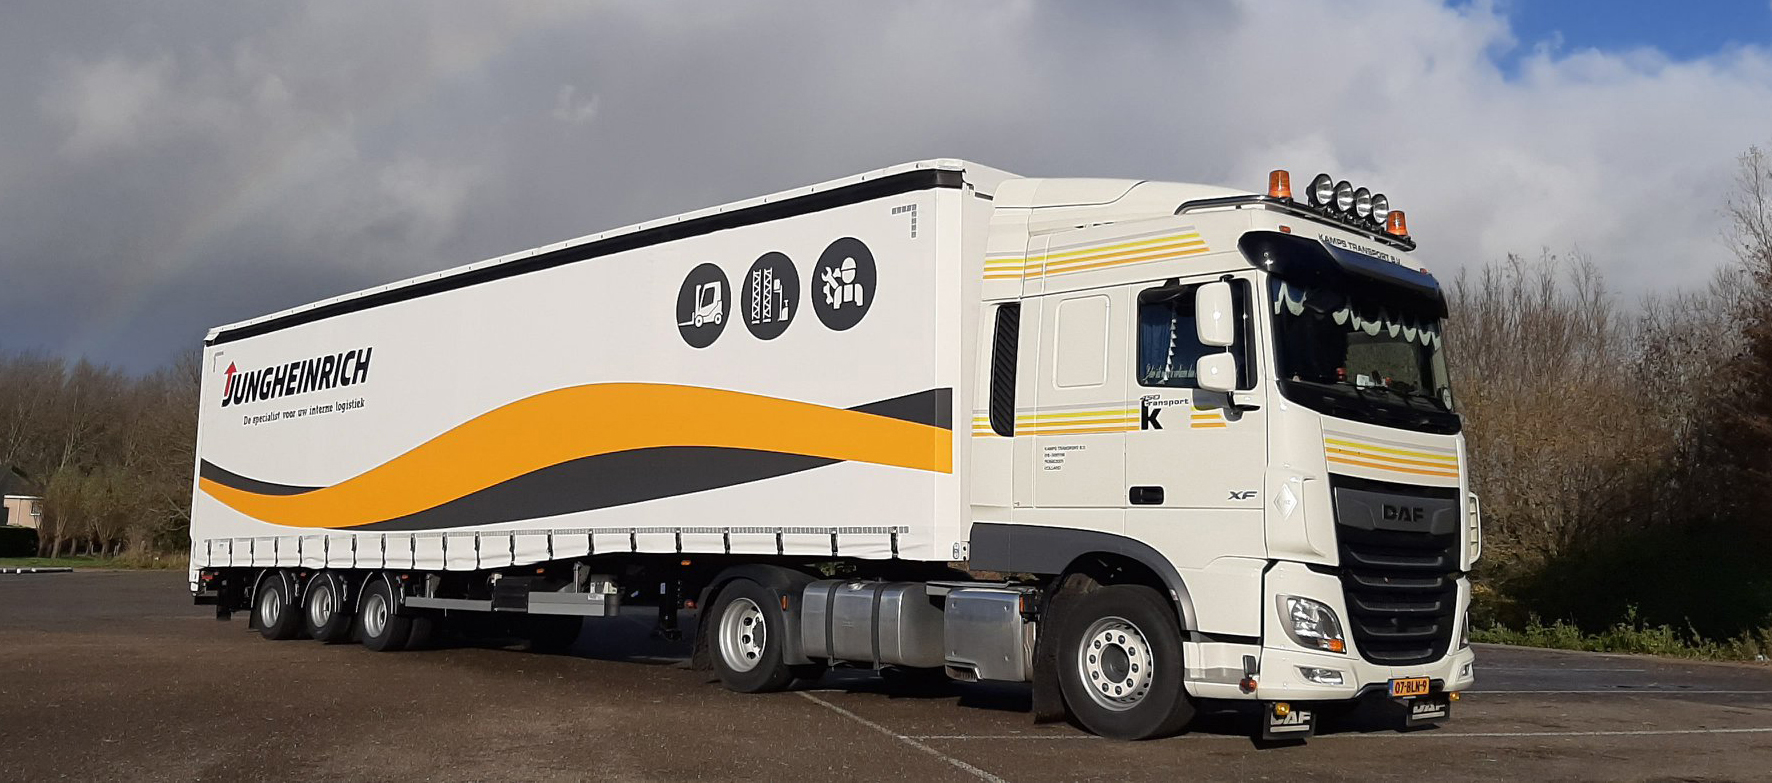 Burg trailer voor heftrucktransport